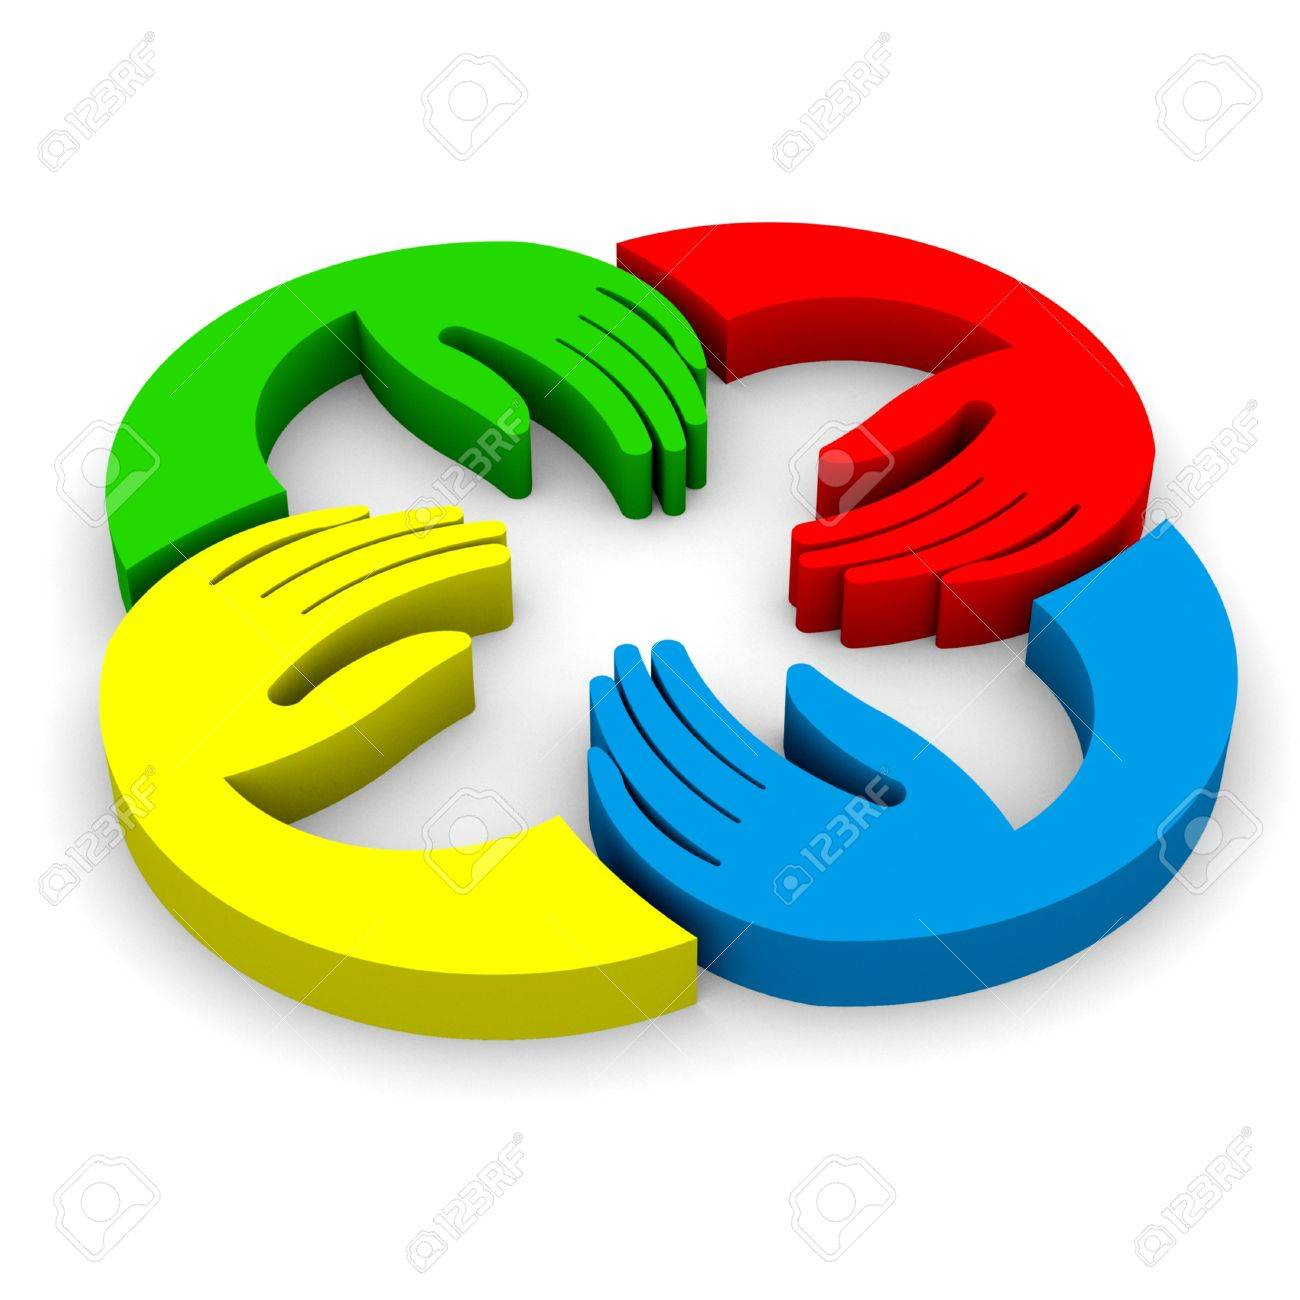 Hands connecting 3D view Stock Photo - 20269952